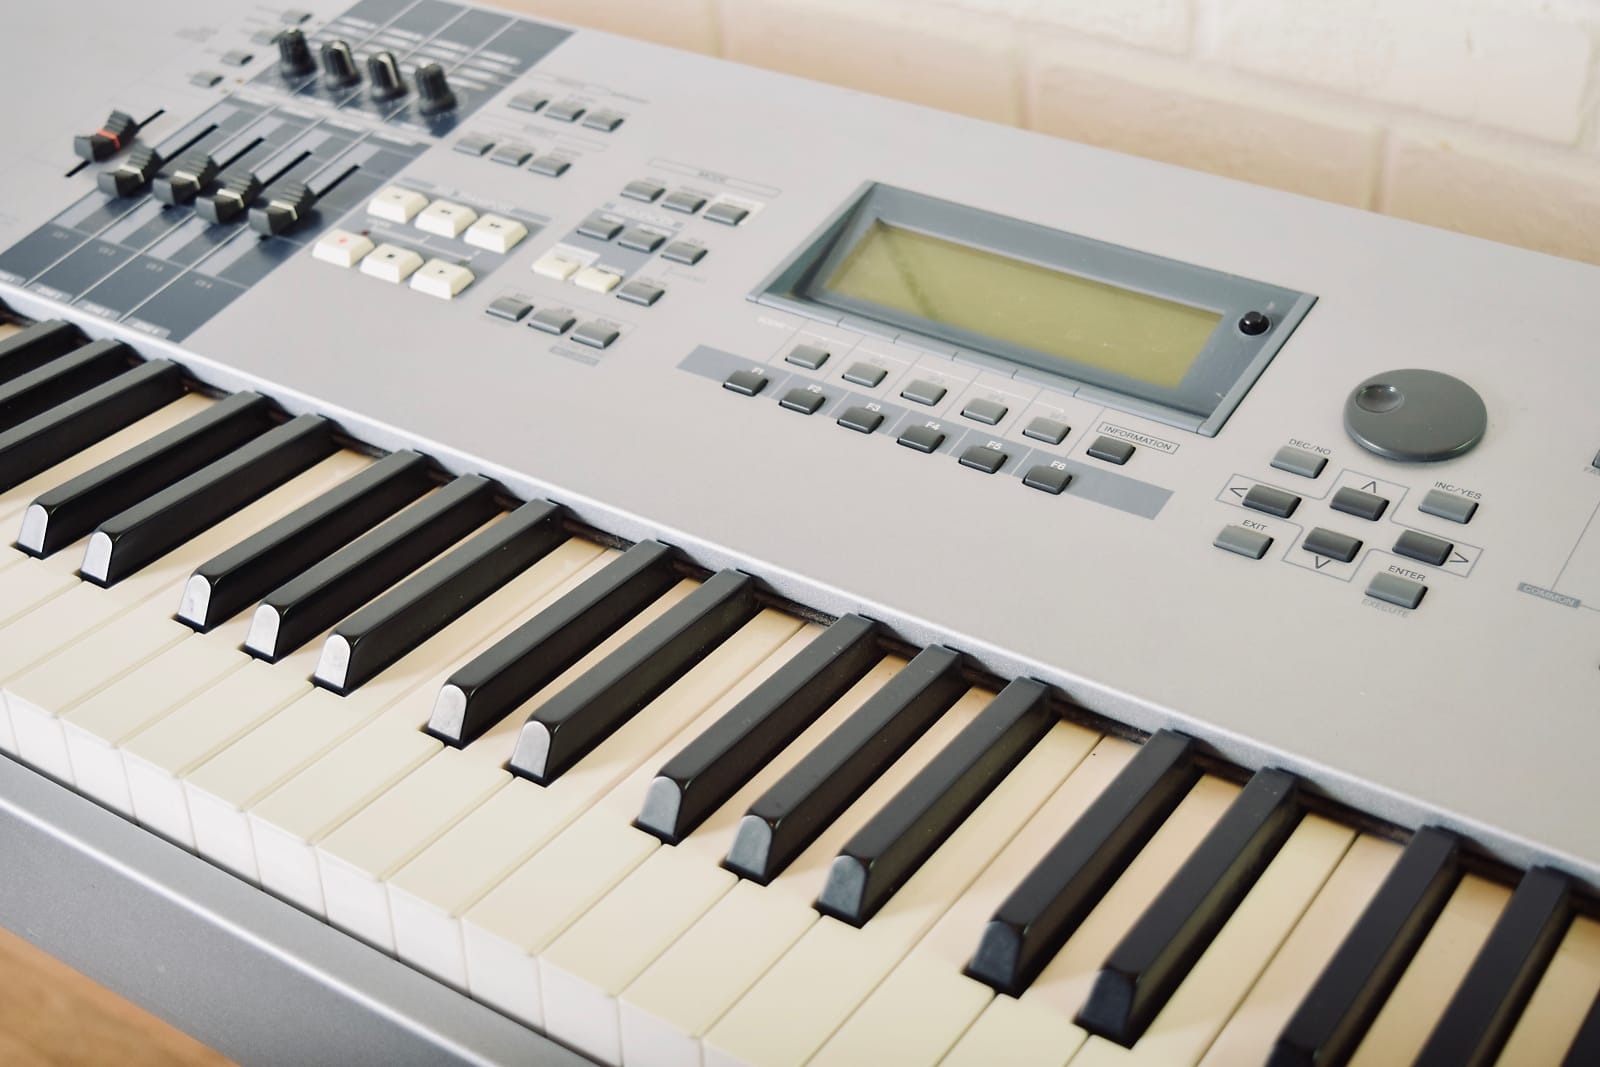 Yamaha Motif ES 8 keyboard synthesizer in excellent condition with manuals